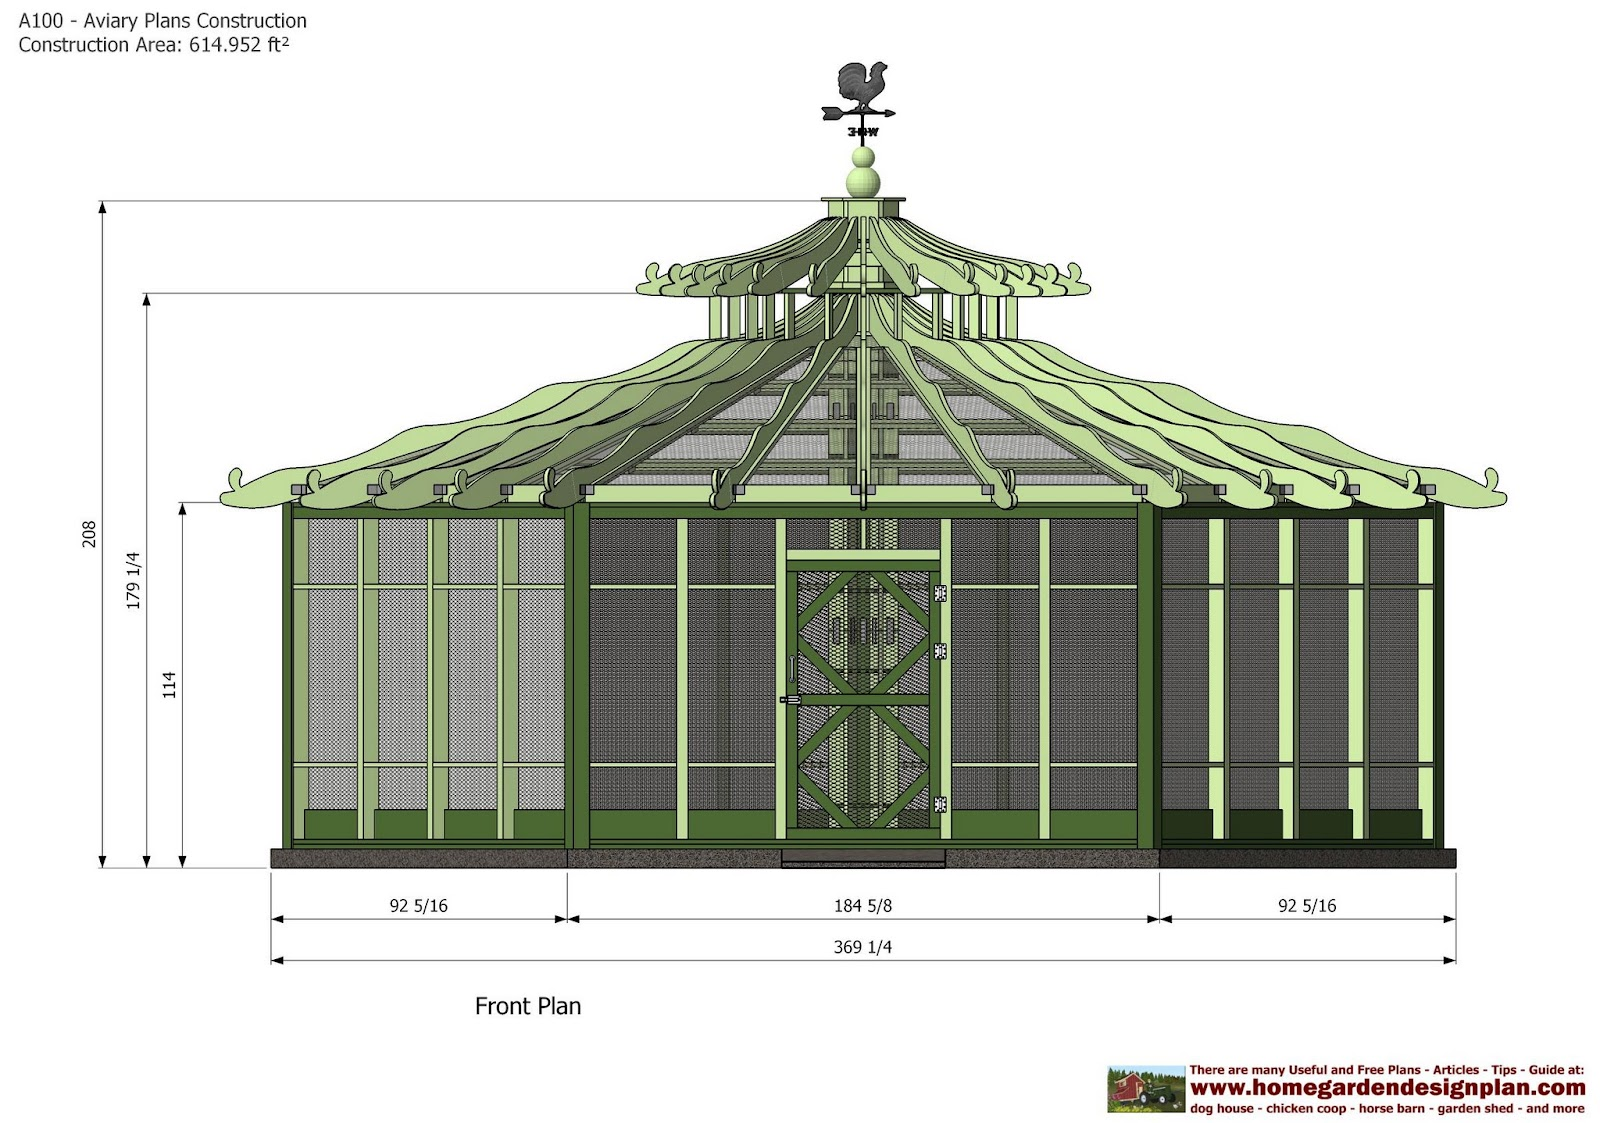 Home garden plans a100 aviary plans construction for Construction house plans